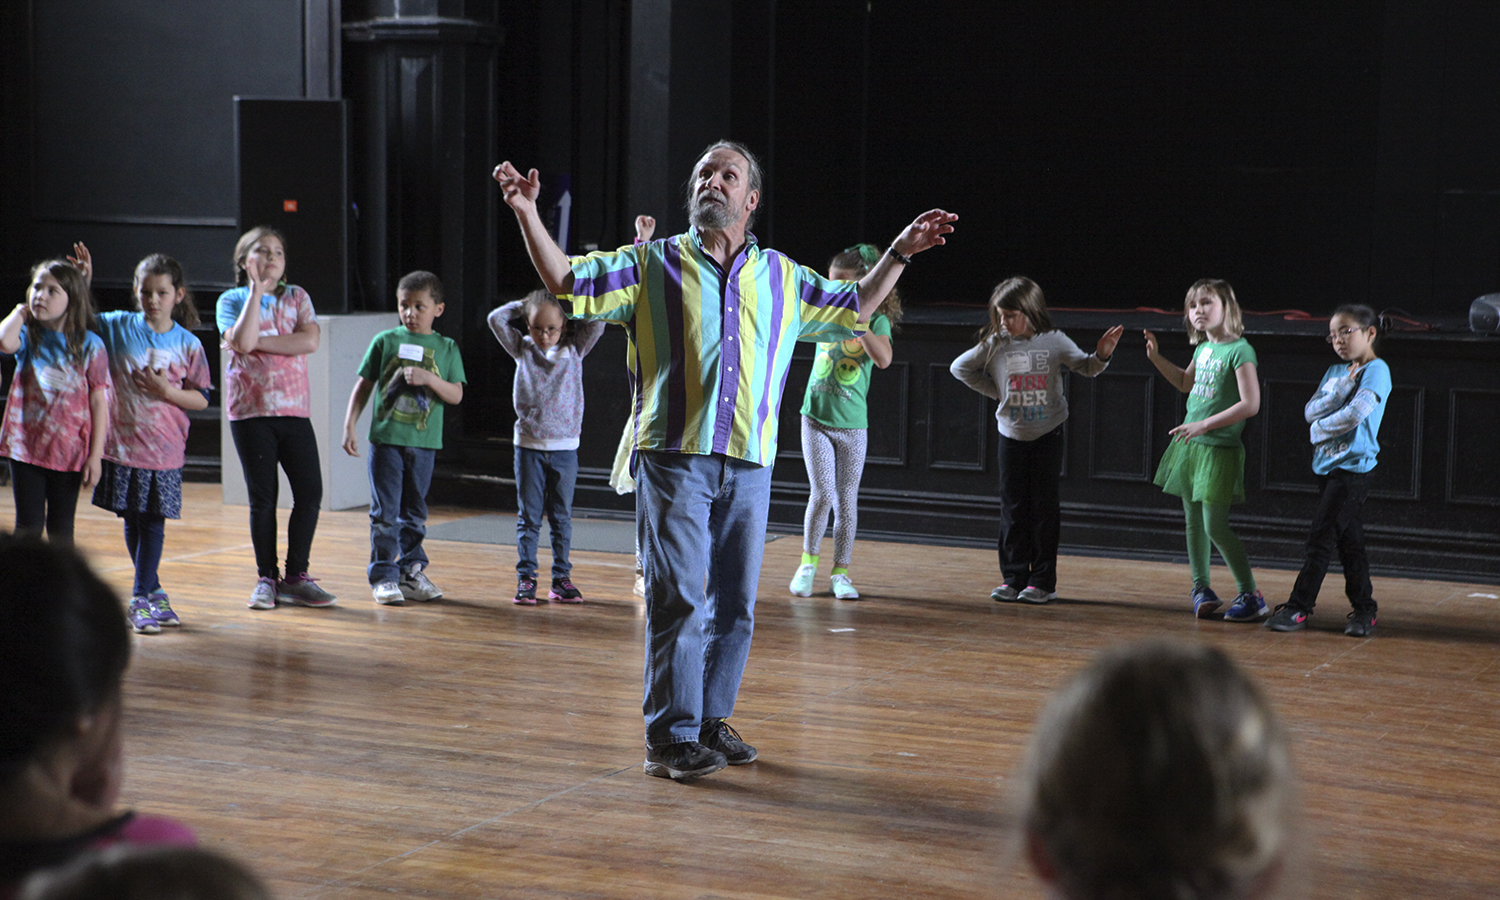 Visiting second graders from the Geneva City School District participate in a number of events around campus. The event was sponsored by the Geneva 2020 Initiative and the Center for Community Engagement and Service Learning.Professor of Education Pat Collins leads an acting workshop in the Bartlett Theatre.